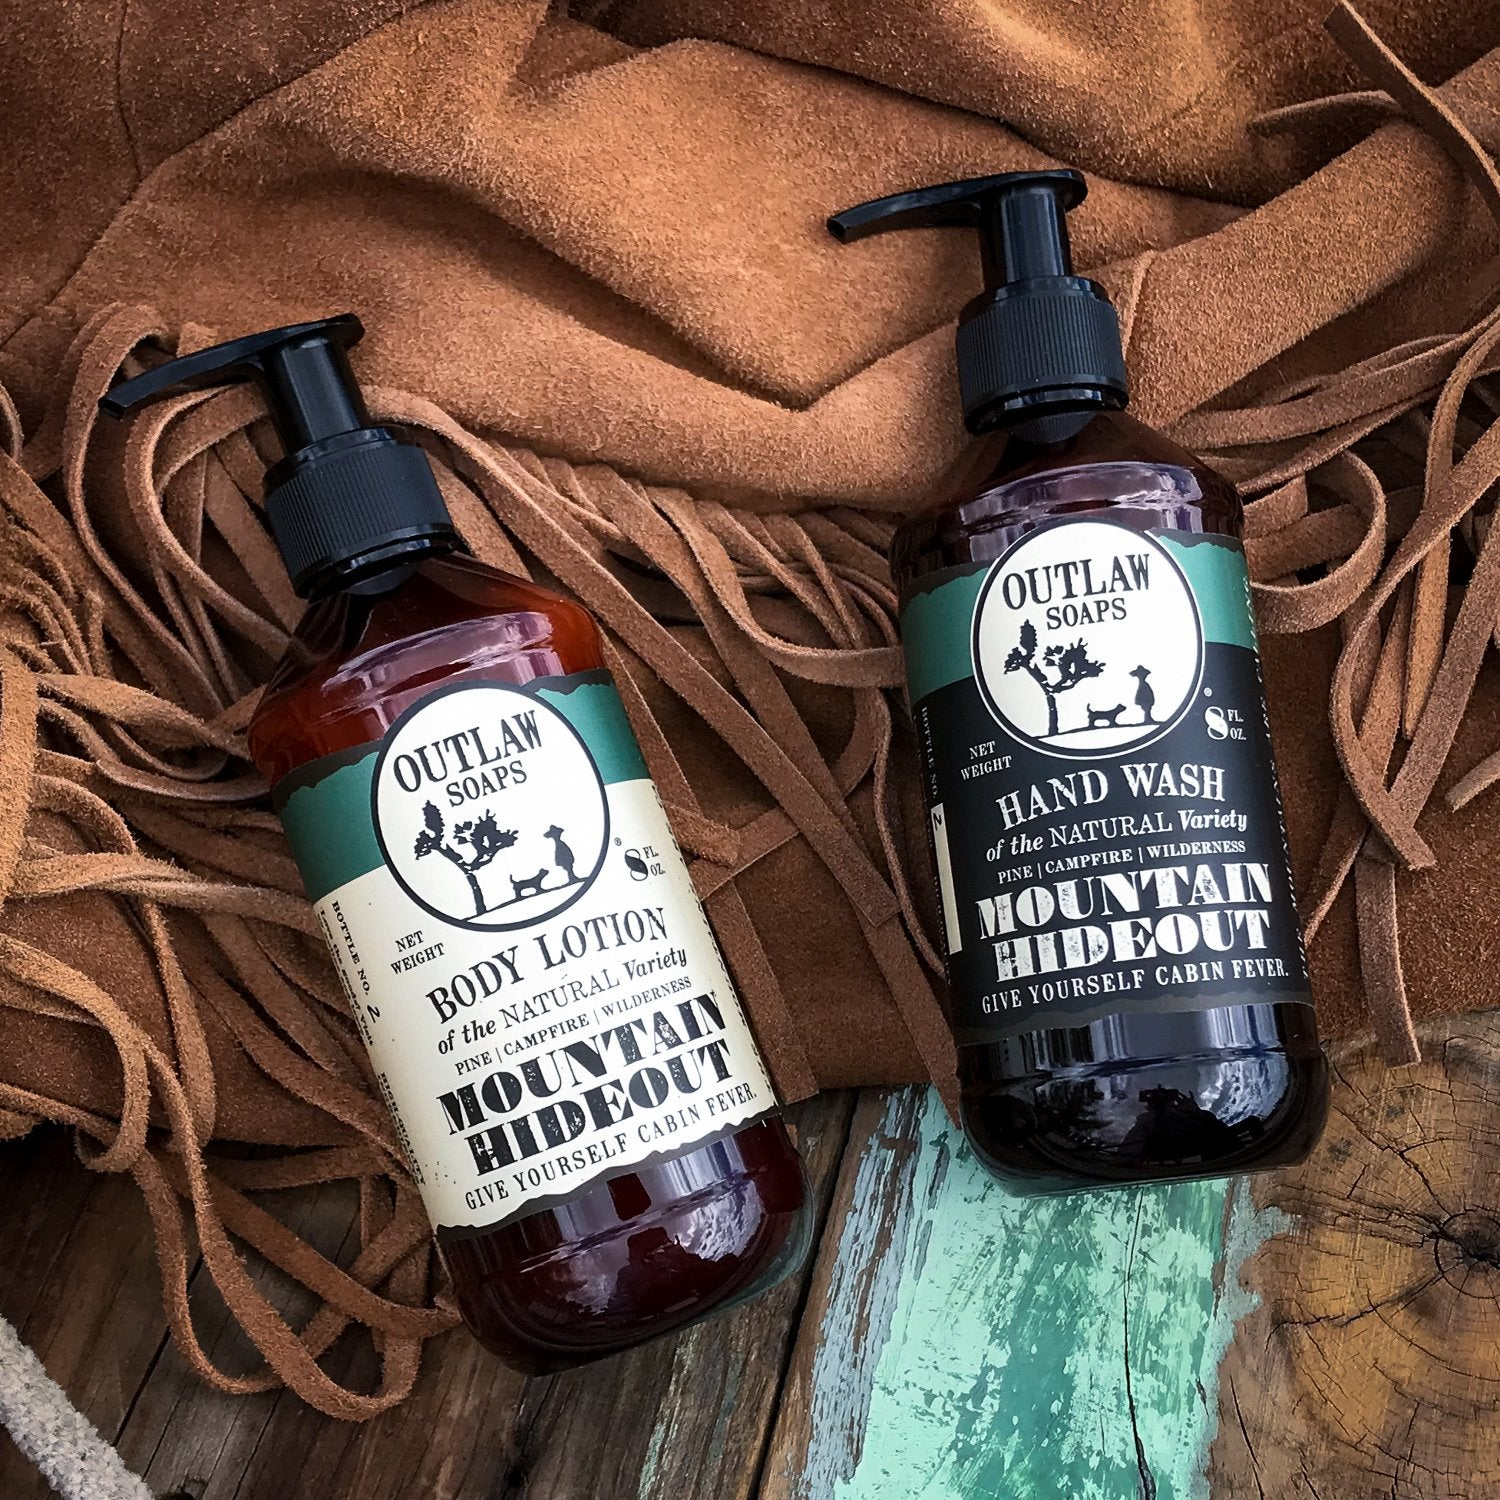 Mountain Hideout Natural Hand Wash and Lotion Set: In the mountains, you're free - Outlaw Soaps Western Soap and Lotion for Lovers of the Wild West